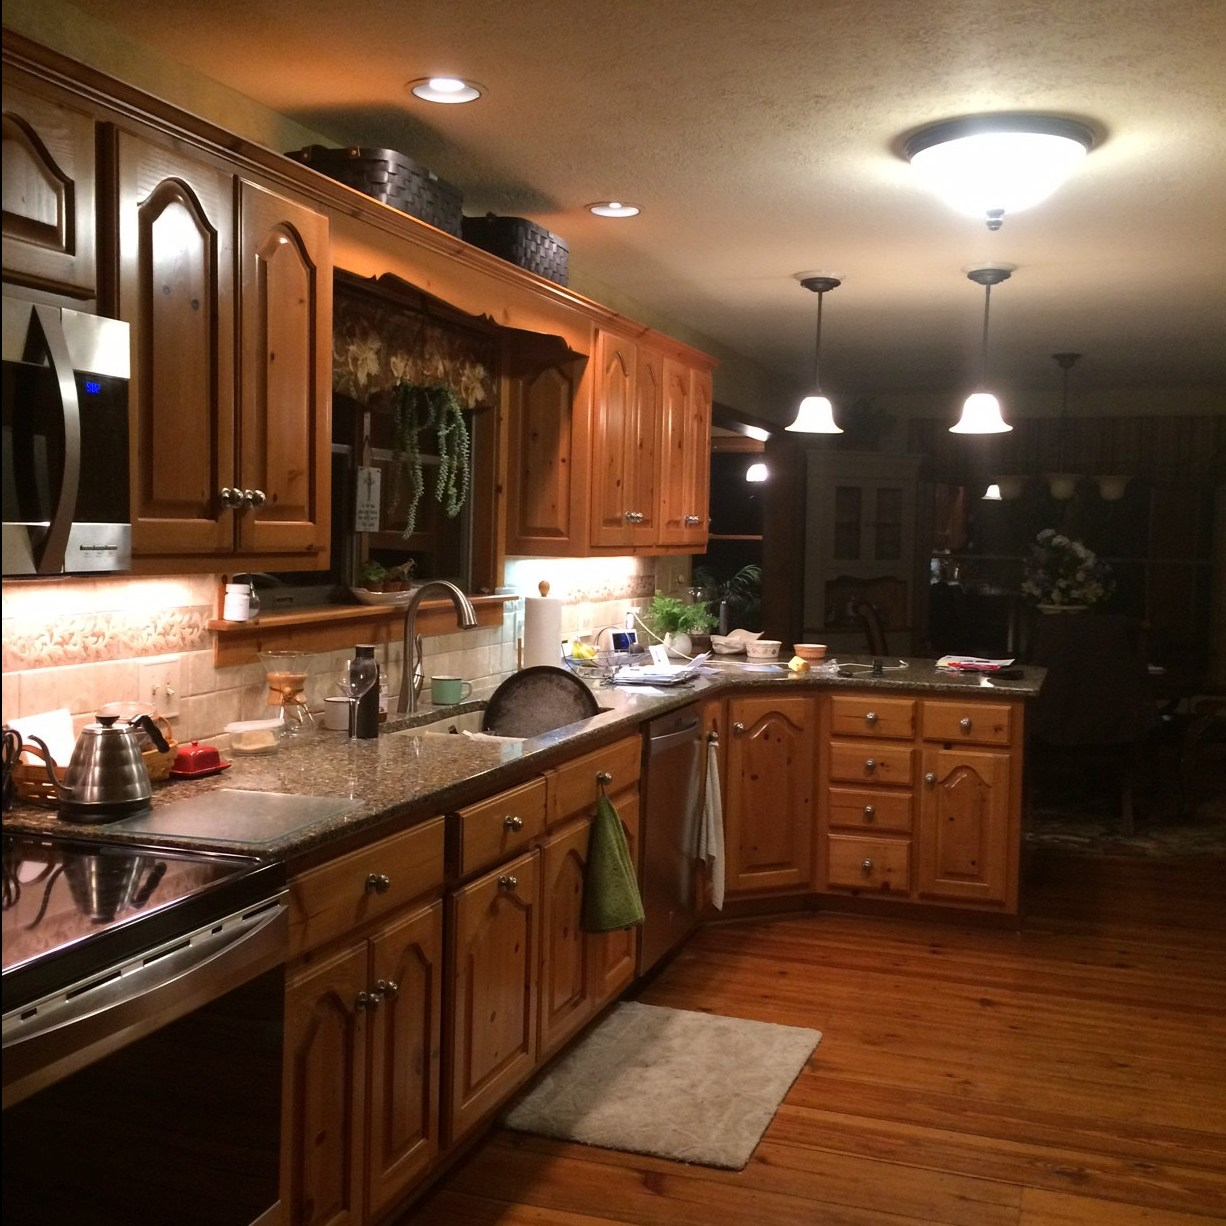 kitchen-cabinets-before-make-over